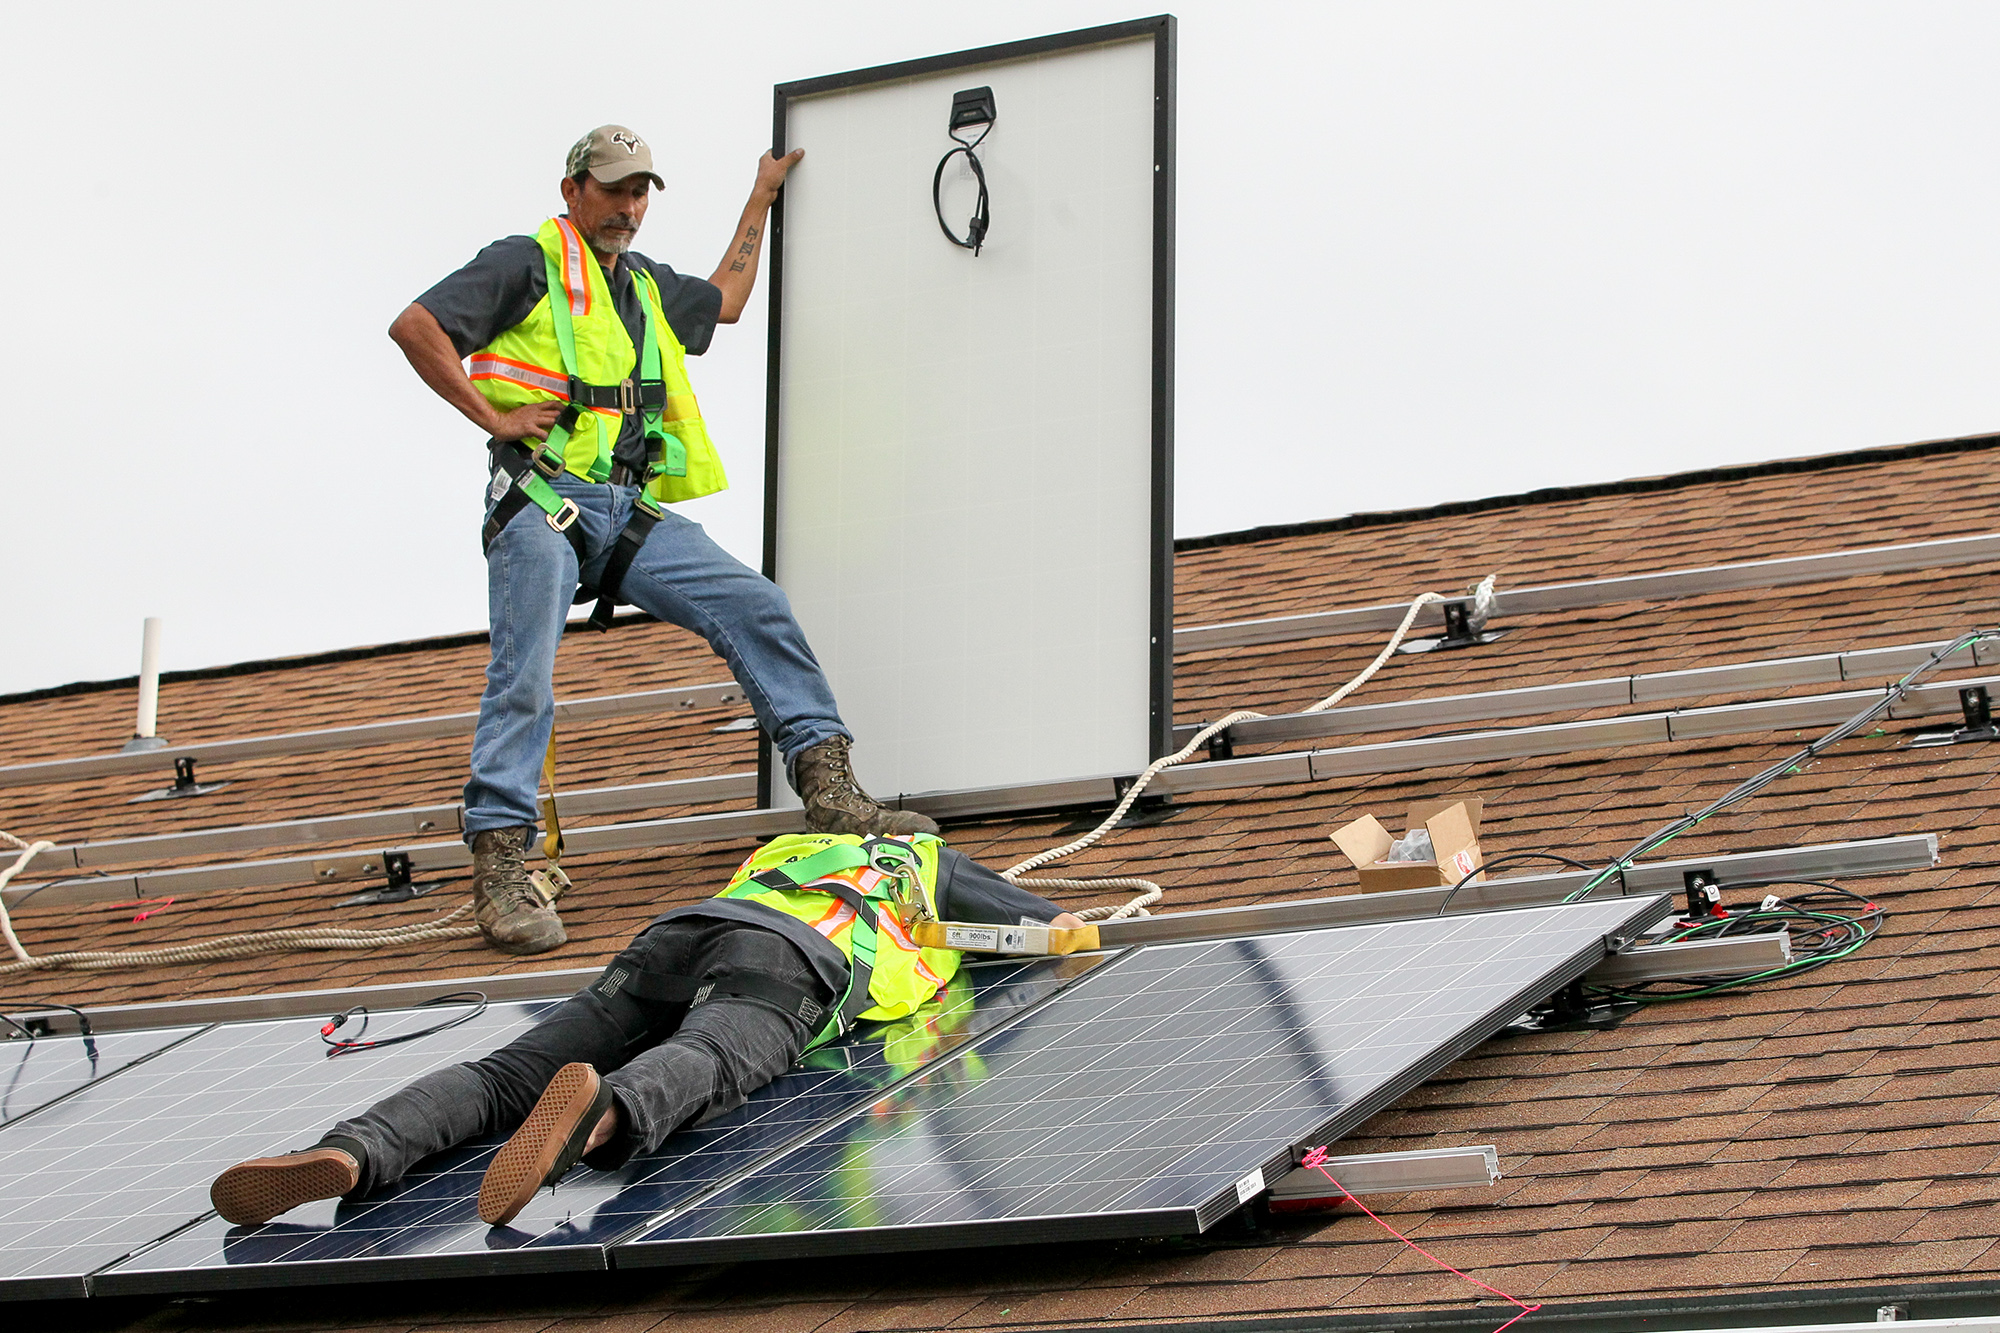 Cps Changing Solar Rebate Policy In Light Of Aggressive